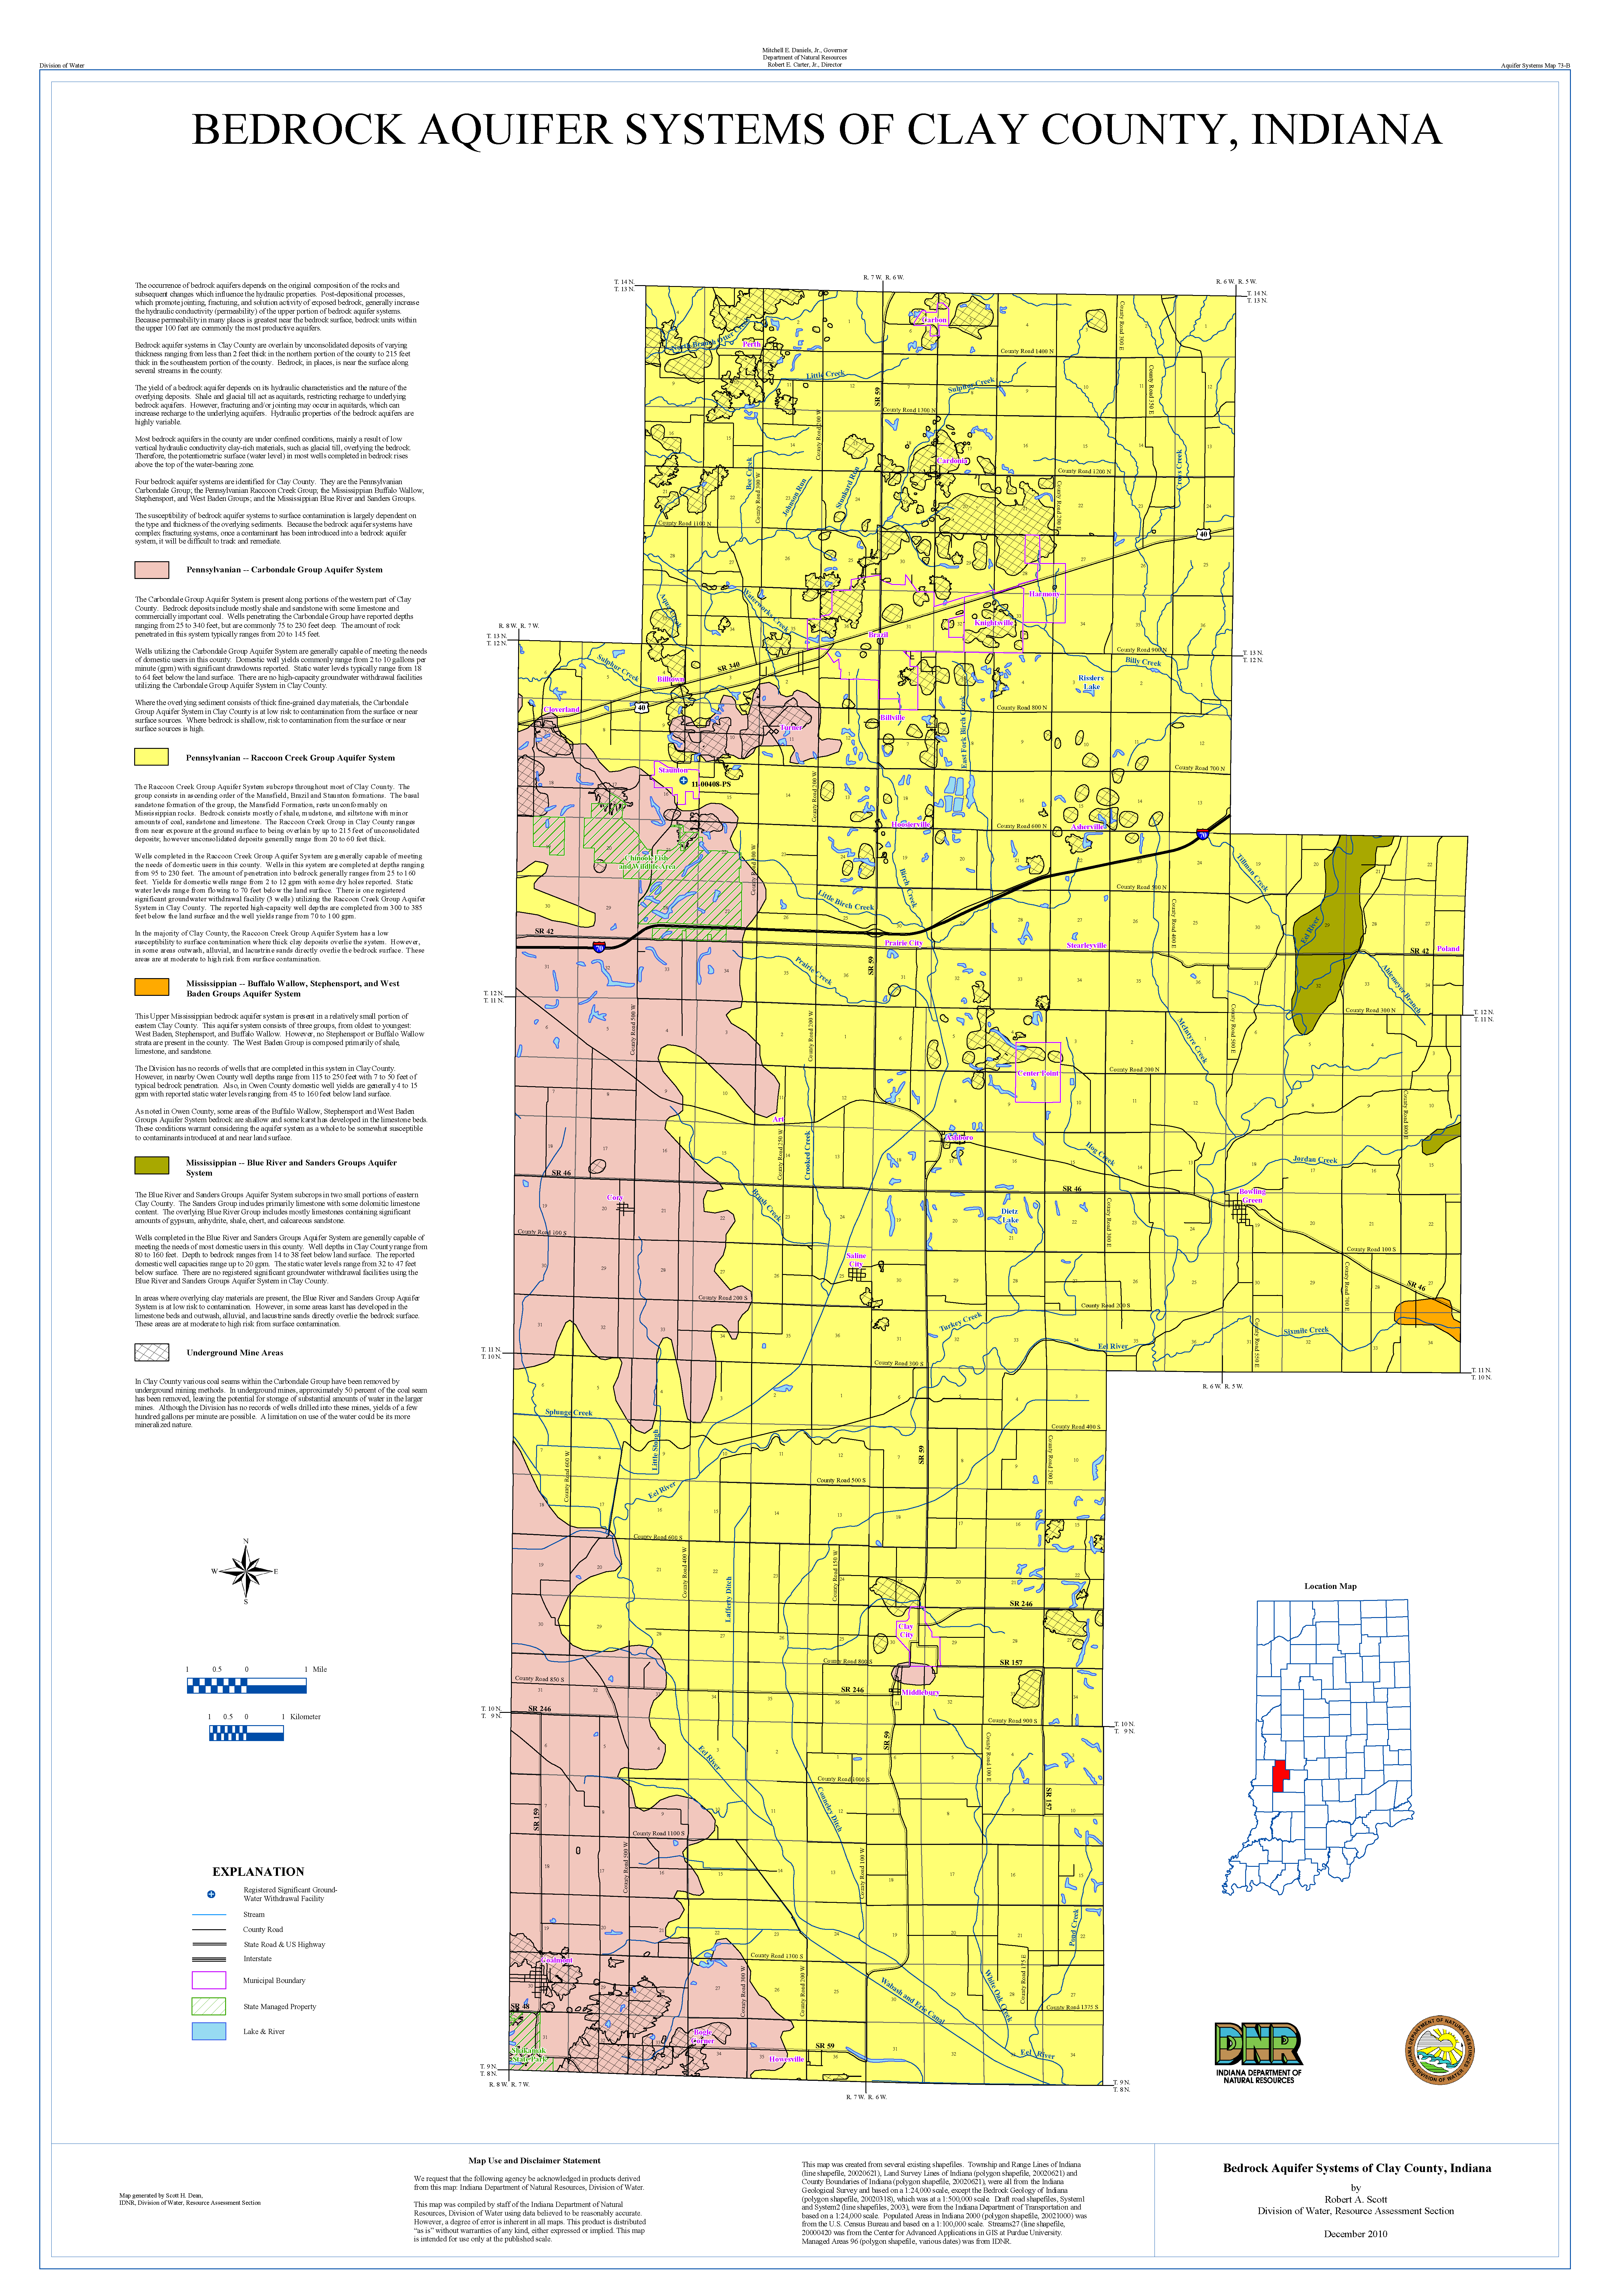 Dnr aquifer systems maps 73 a and 73 b unconsolidated and aquifer systems maps 73 a and 73 b unconsolidated and bedrock aquifer systems of clay county indiana 2010 pooptronica